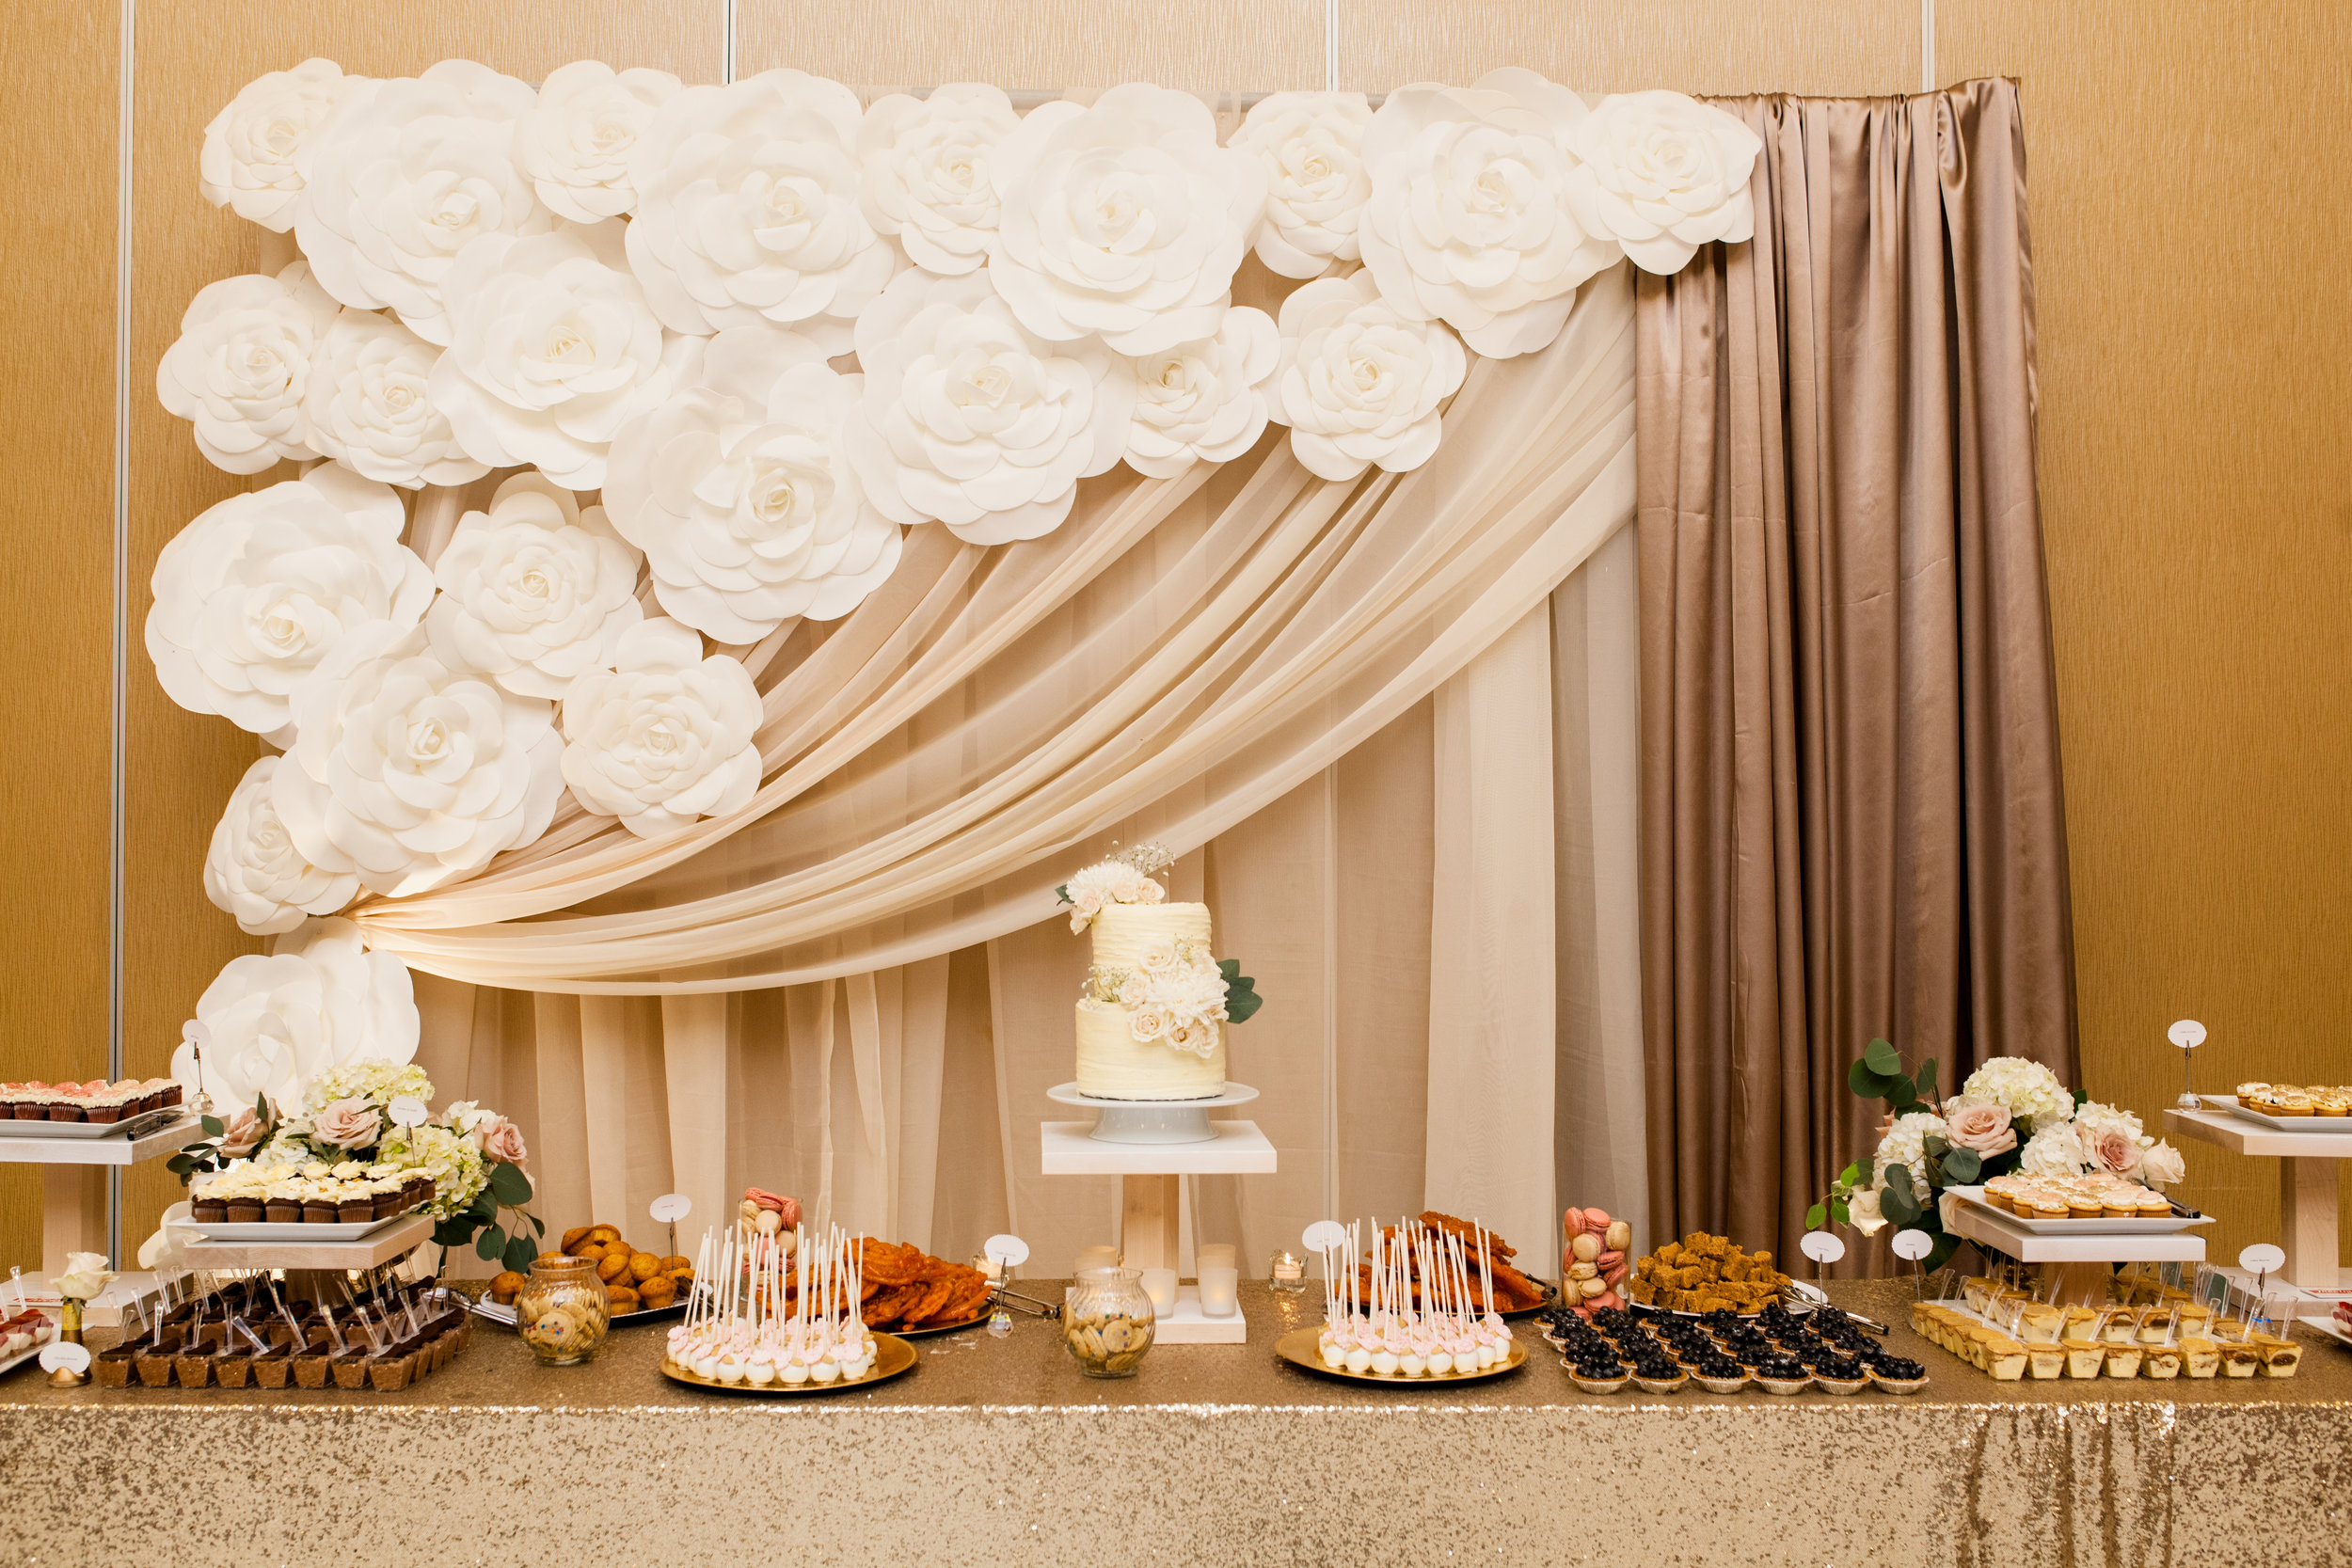 Dessert table frecious catering